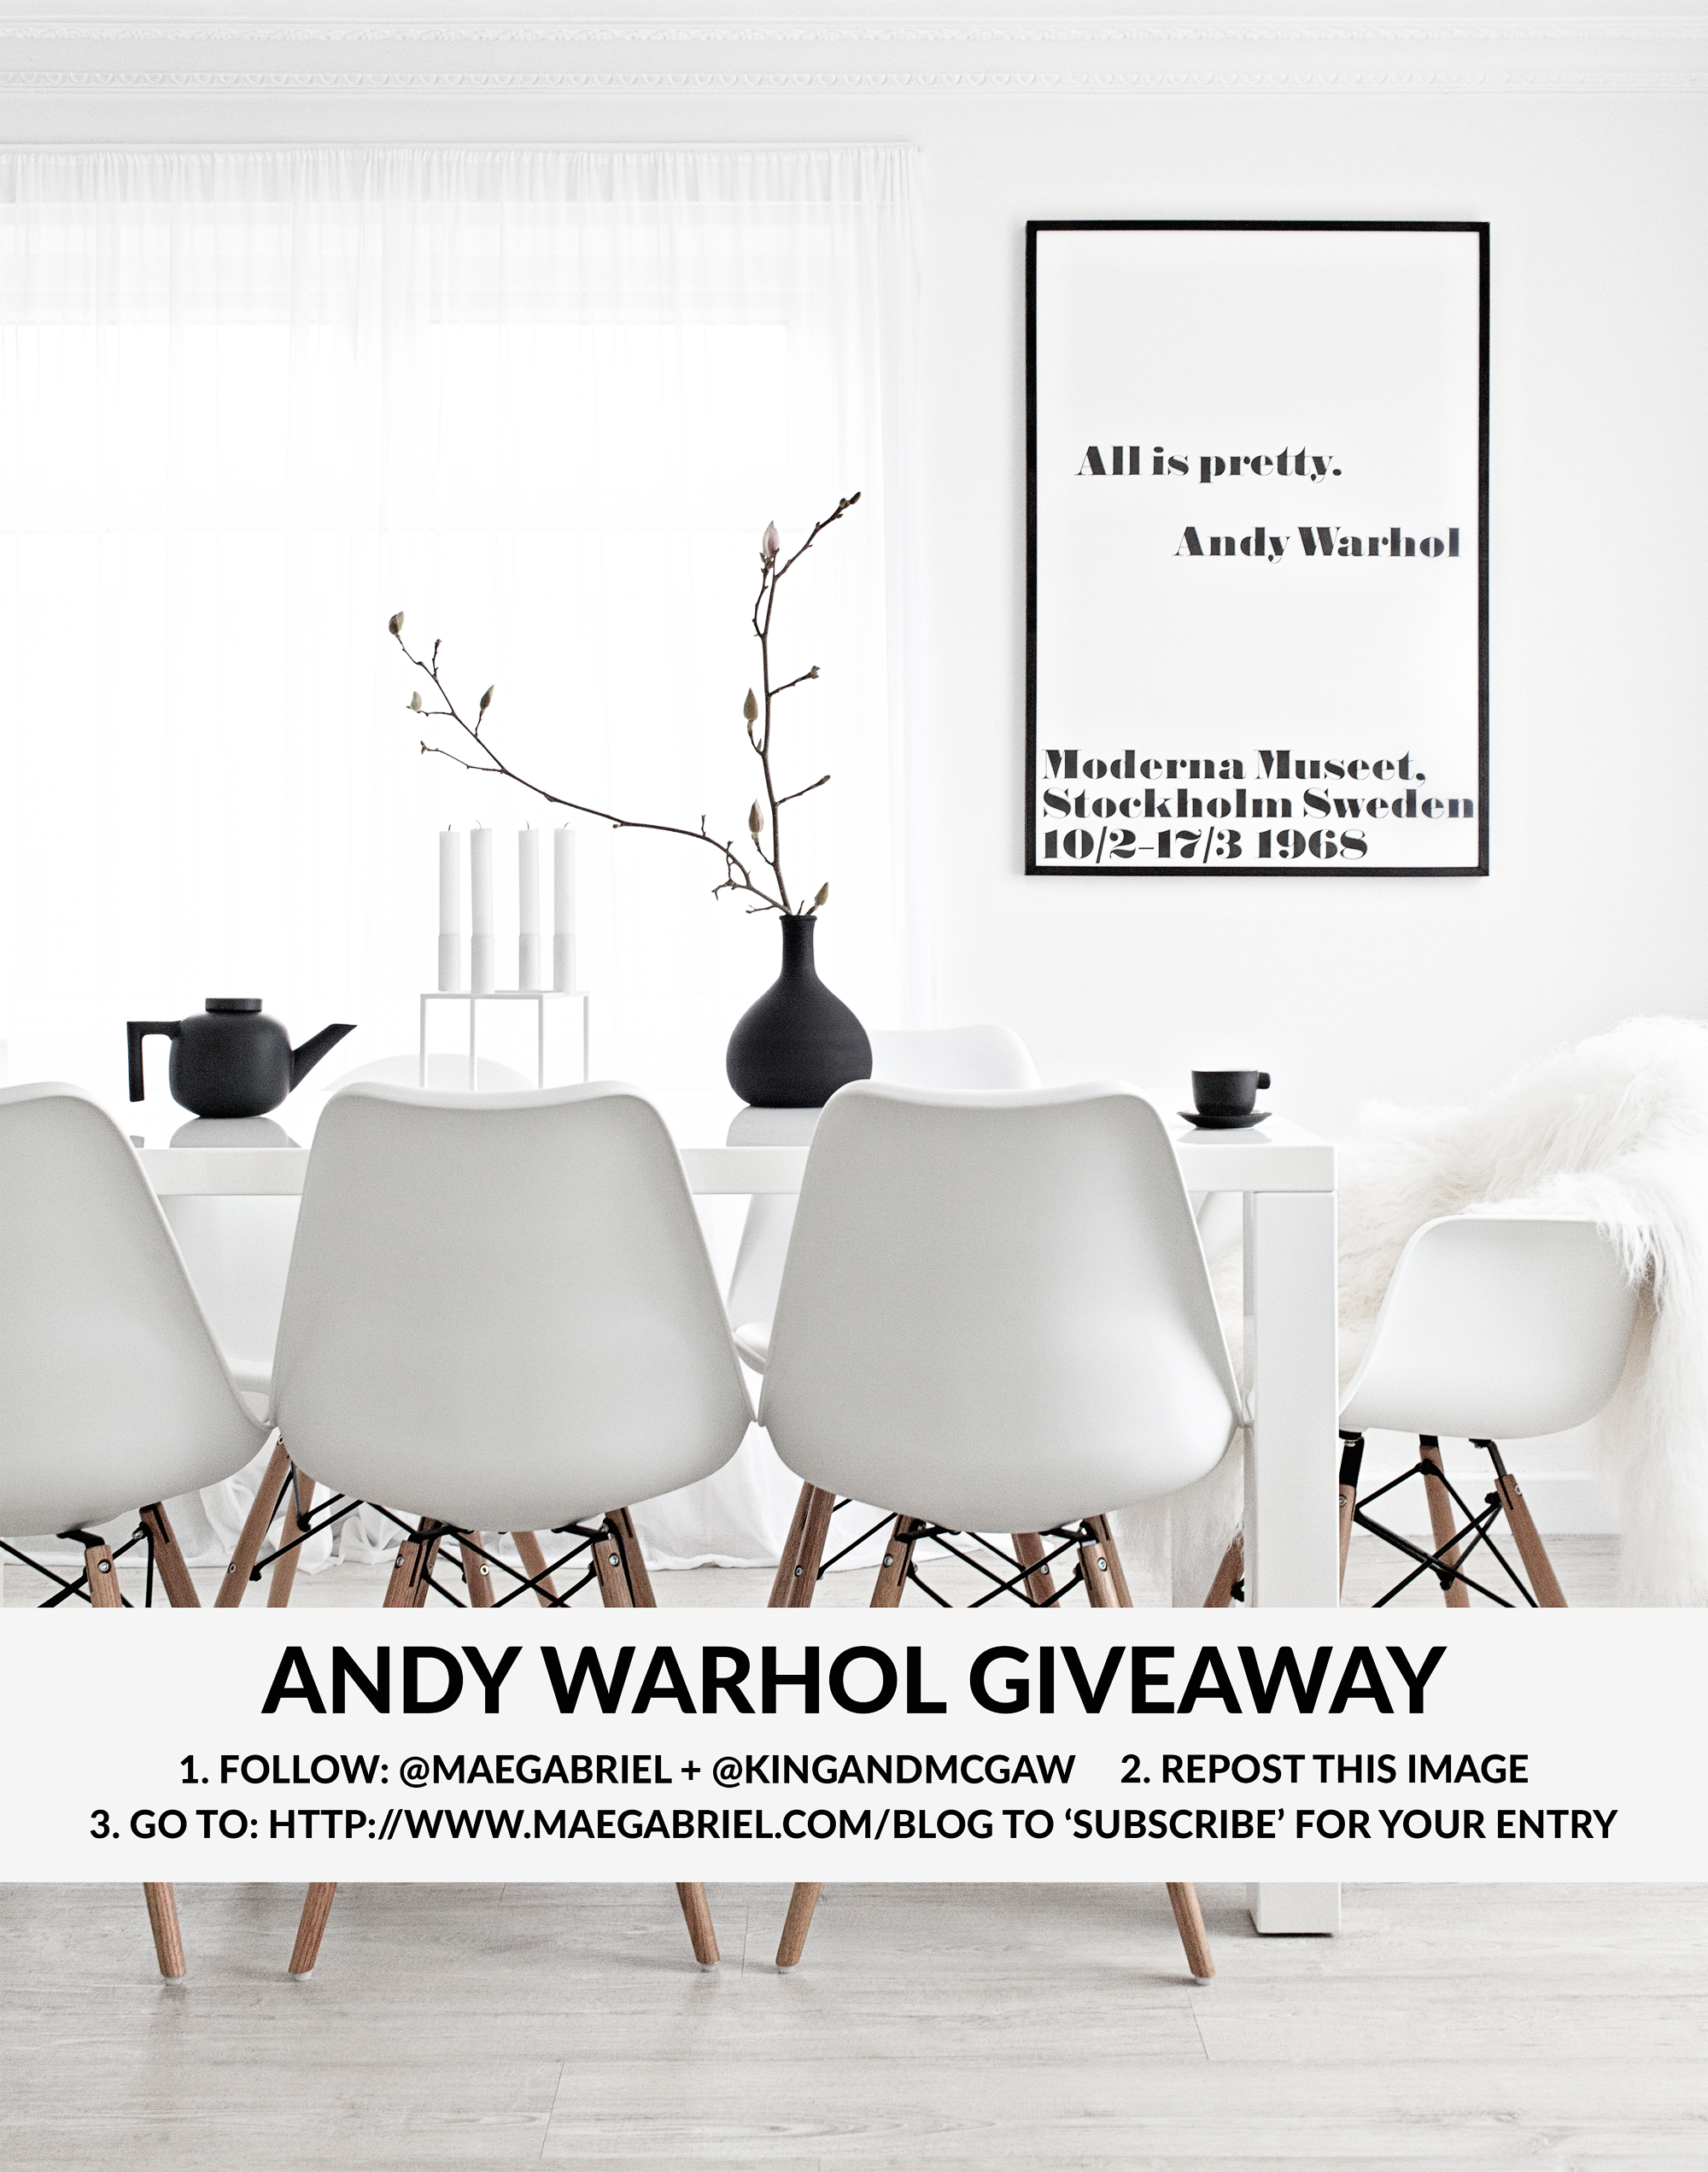 ANDY WARHOL POSTER PRINT GIVEAWAY! CHECK @MAEGABRIEL ON INSTAGRAM OR GO TO THE BLOG HTTP://WWW.MAEGABRIEL.COM TO ENTER